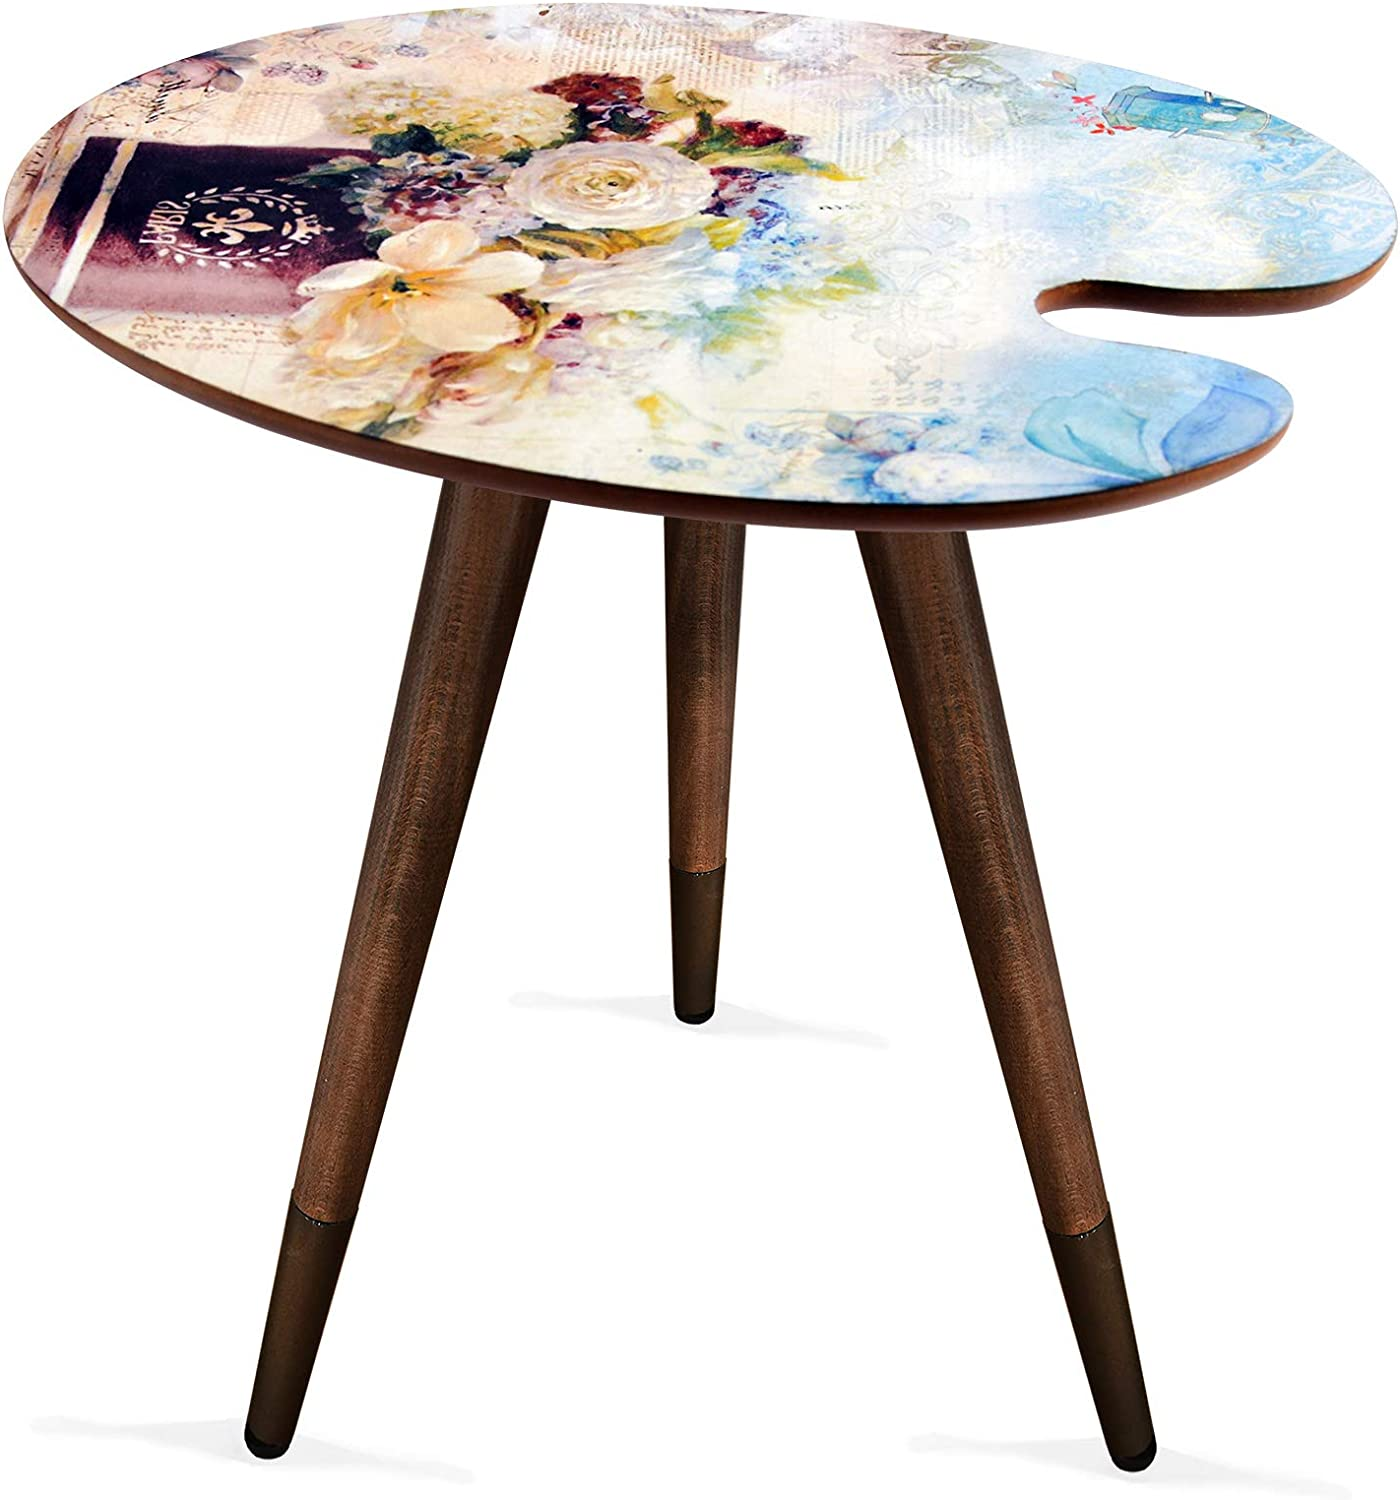 Paint Print Wooden Design Vintage,Retro, Mid-Century Modern Design Wooden Coffee Table, Cocktail Table for Living Room, Bedroom or Home Office